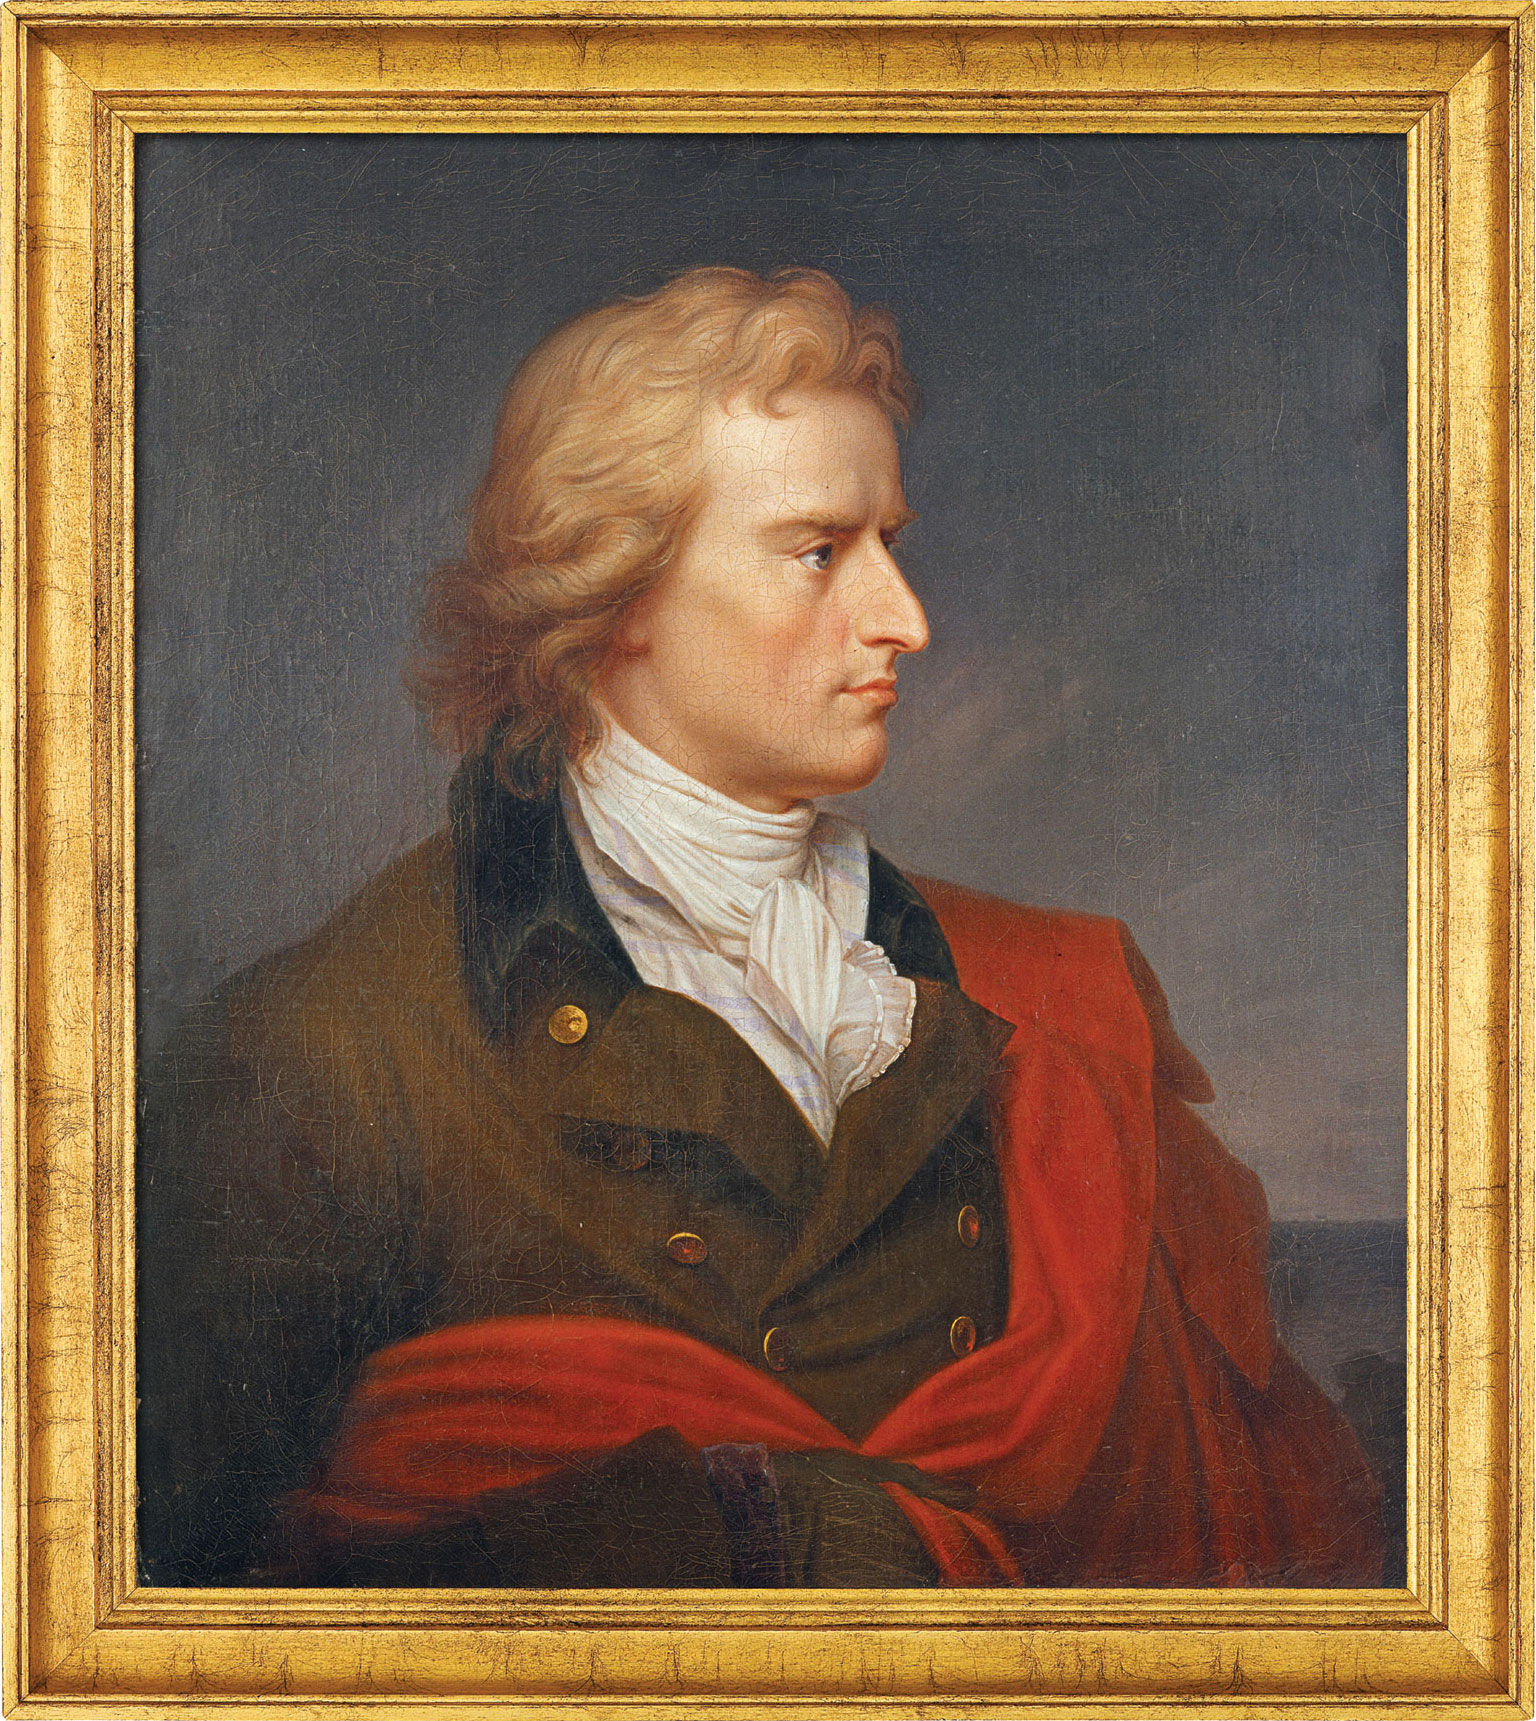 """Painting """"Schille's Portrait"""" (1808-1809) in a frame"""